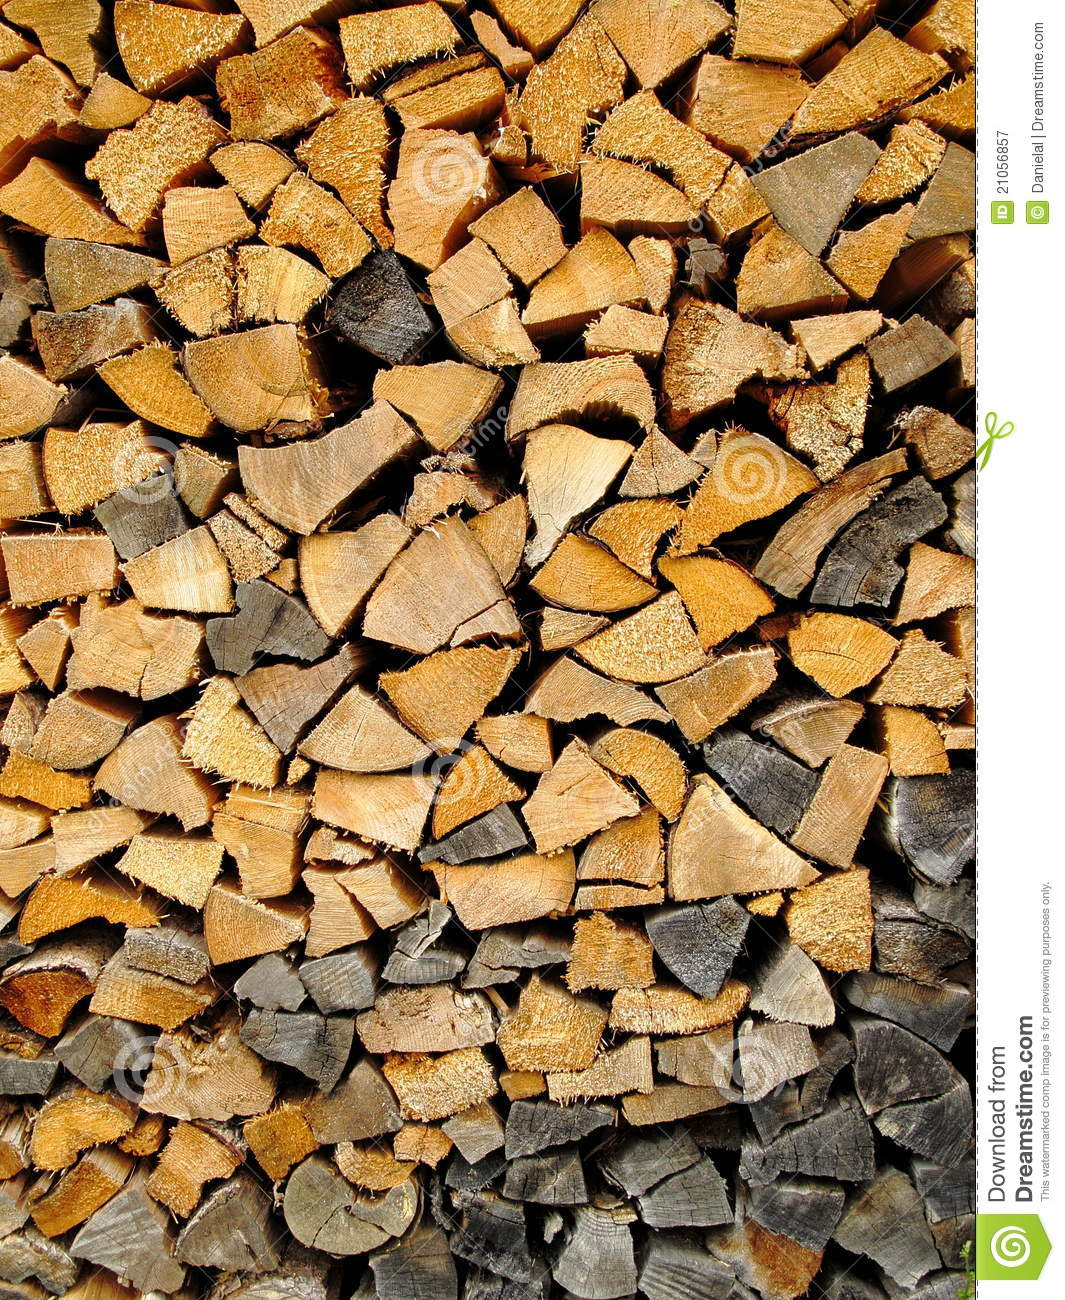 Stumps, The - The Black Wood